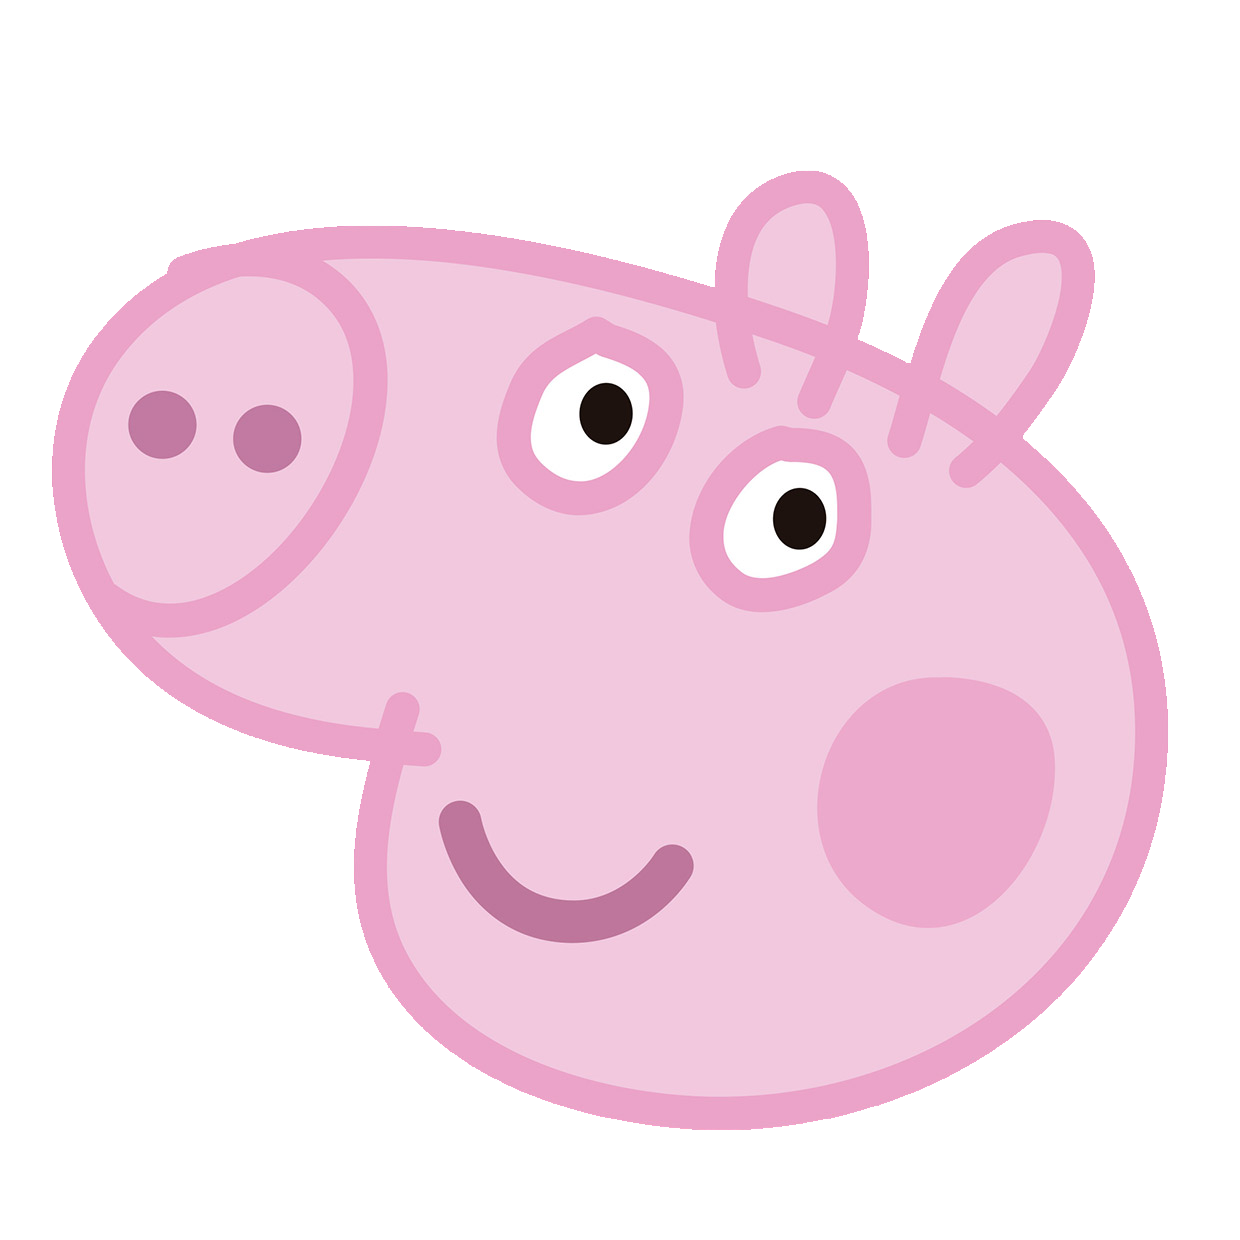 Peppa Pig George Pig 04 Imagens Png Search Results Fun